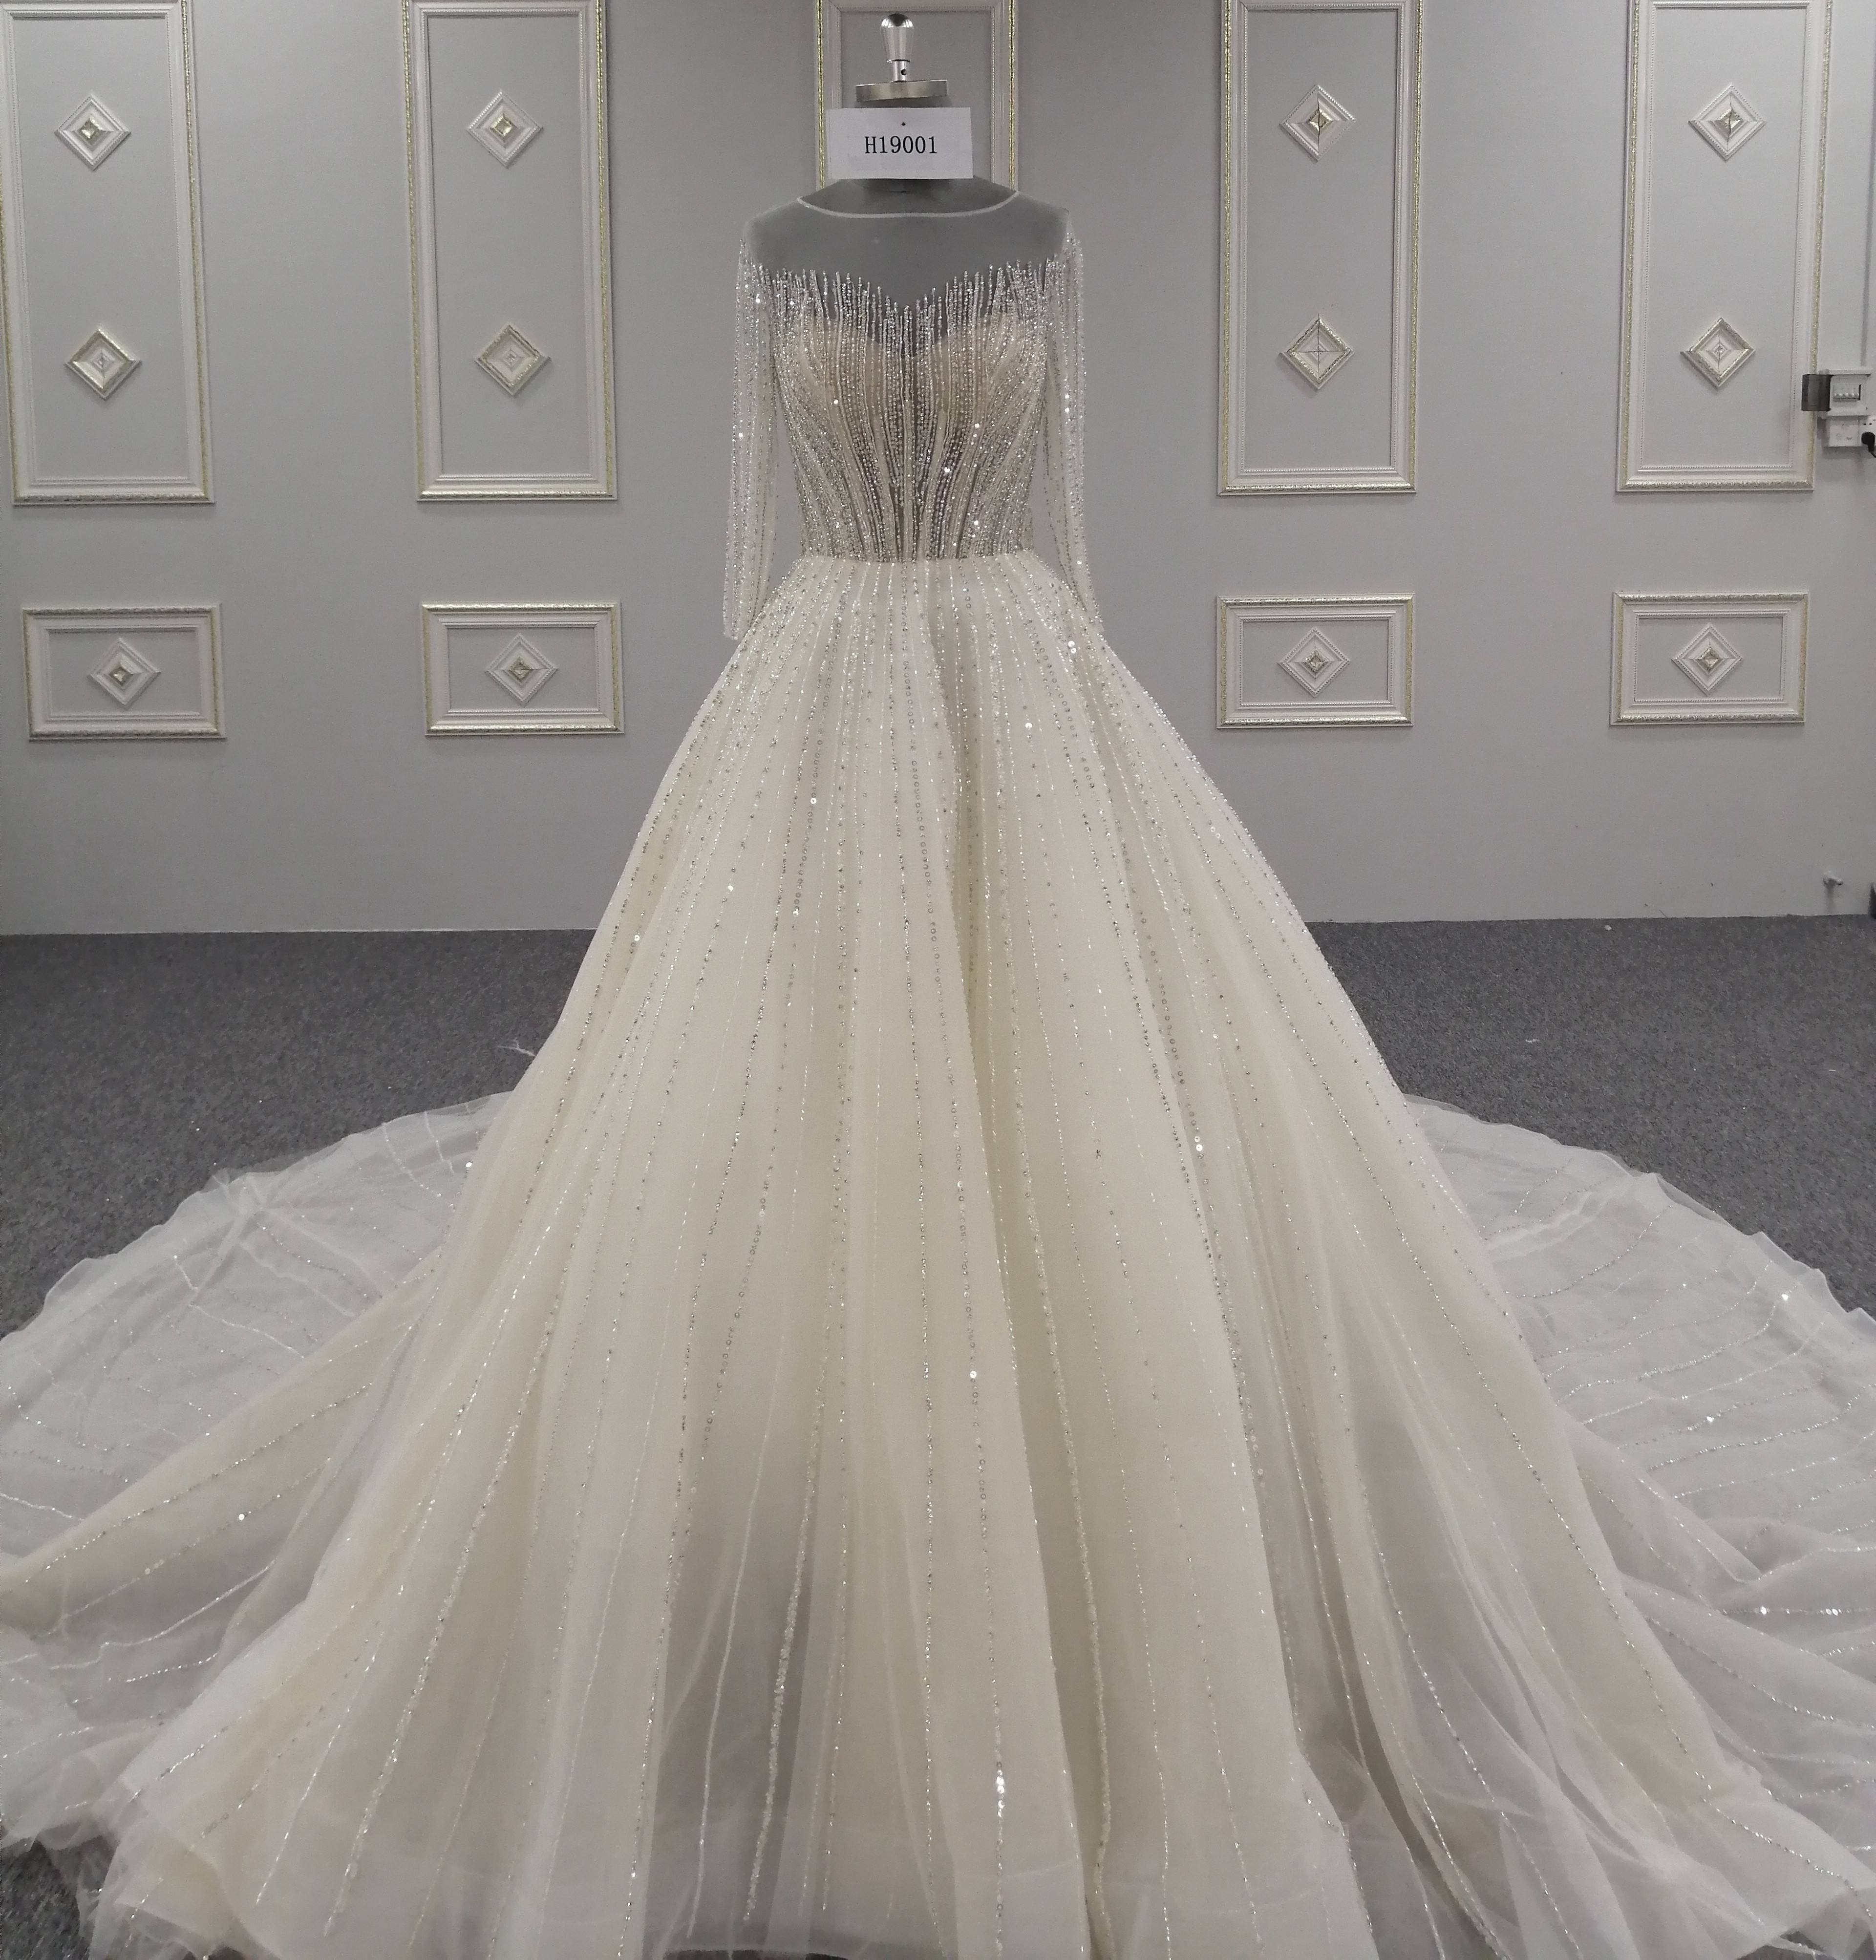 New Products Luxury Handmade Beaded Lace Wedding Dress Bridal Gown